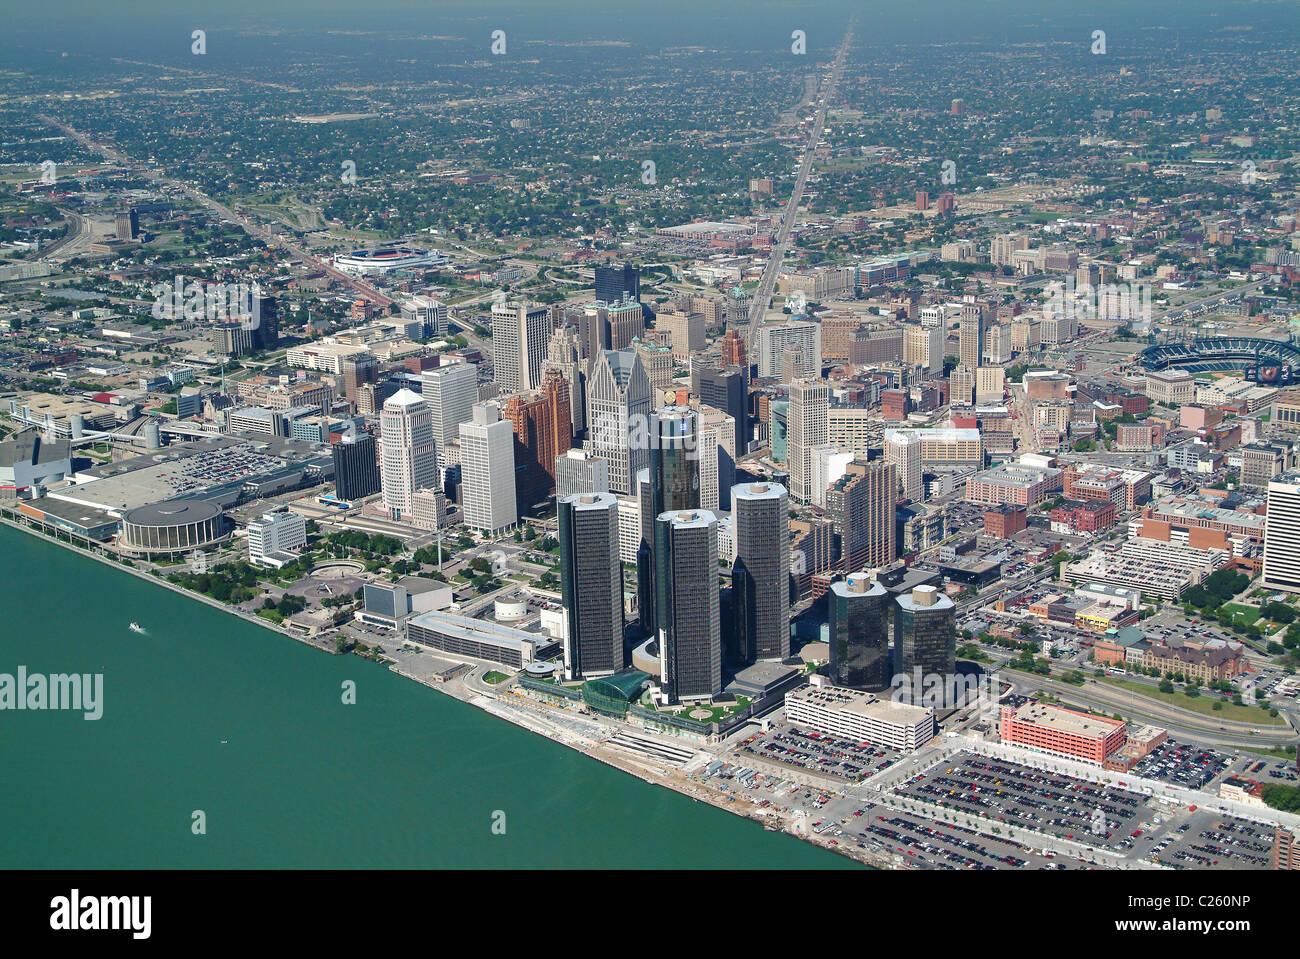 border map of usa with Stock Photo Aerial View Of Downtown Detroit Michigan And Detroit River Usa 35782370 on Usa likewise Armstrong E2 80 93Jackman Border Crossing furthermore Stock Photo Aerial View Of Downtown Detroit Michigan And Detroit River Usa 35782370 as well Chinese Military Base In Djibouti Necessary To Protect Key Trade Routes Linking Asia Africa The Middle East And Europe as well File Yellowstone Map.